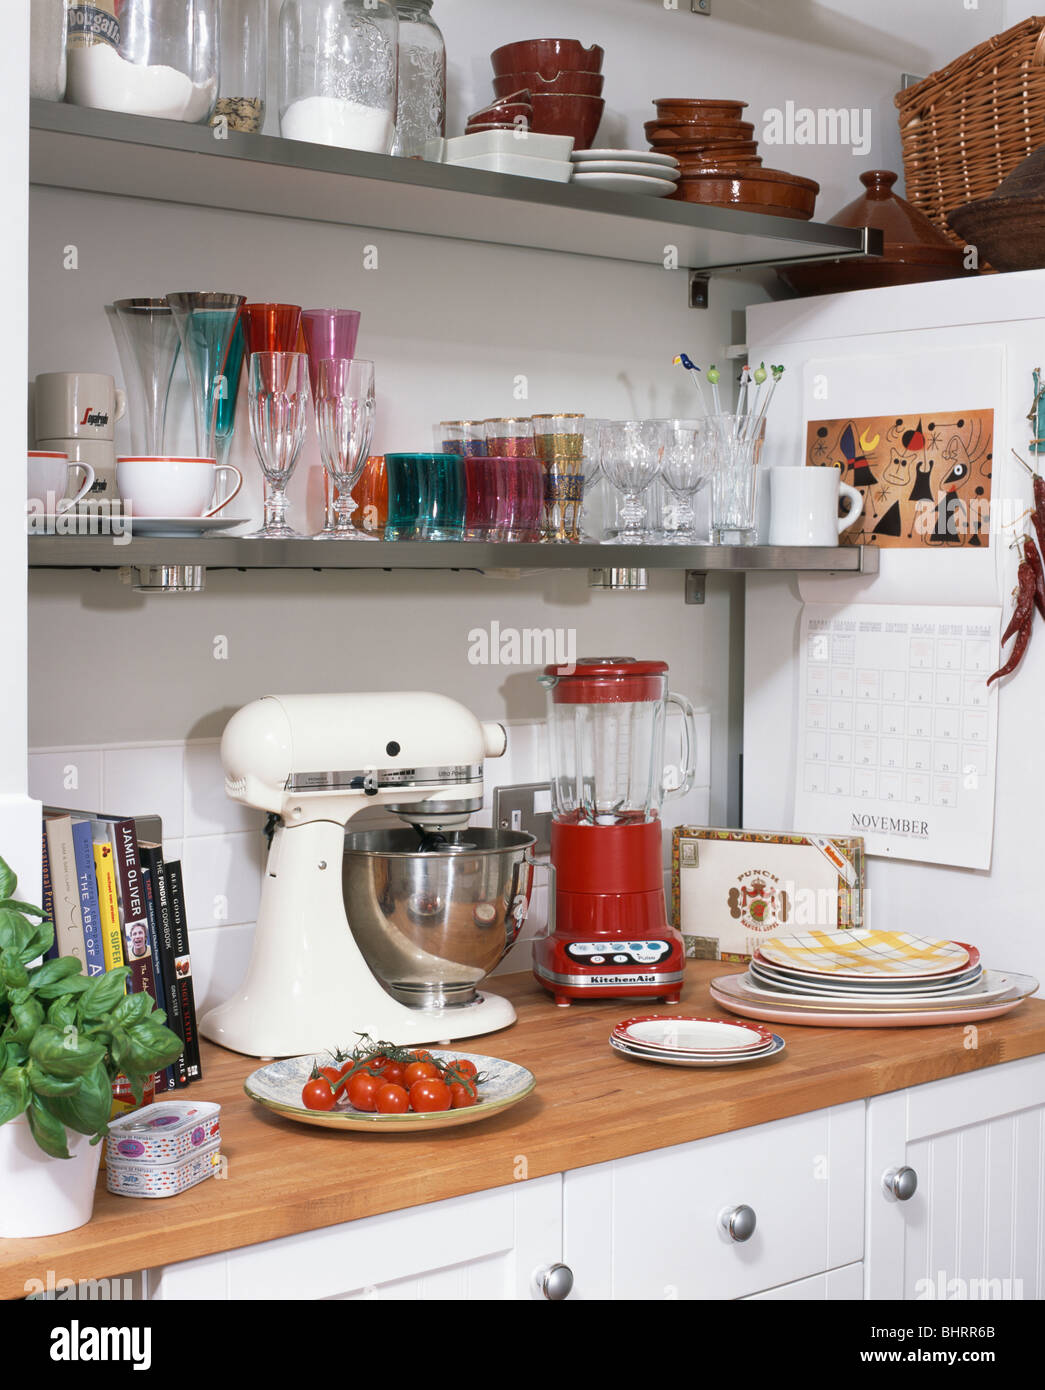 White Kitchenaid Mixer close-up of red kitchenaid blender and white kitchenaid mixer on